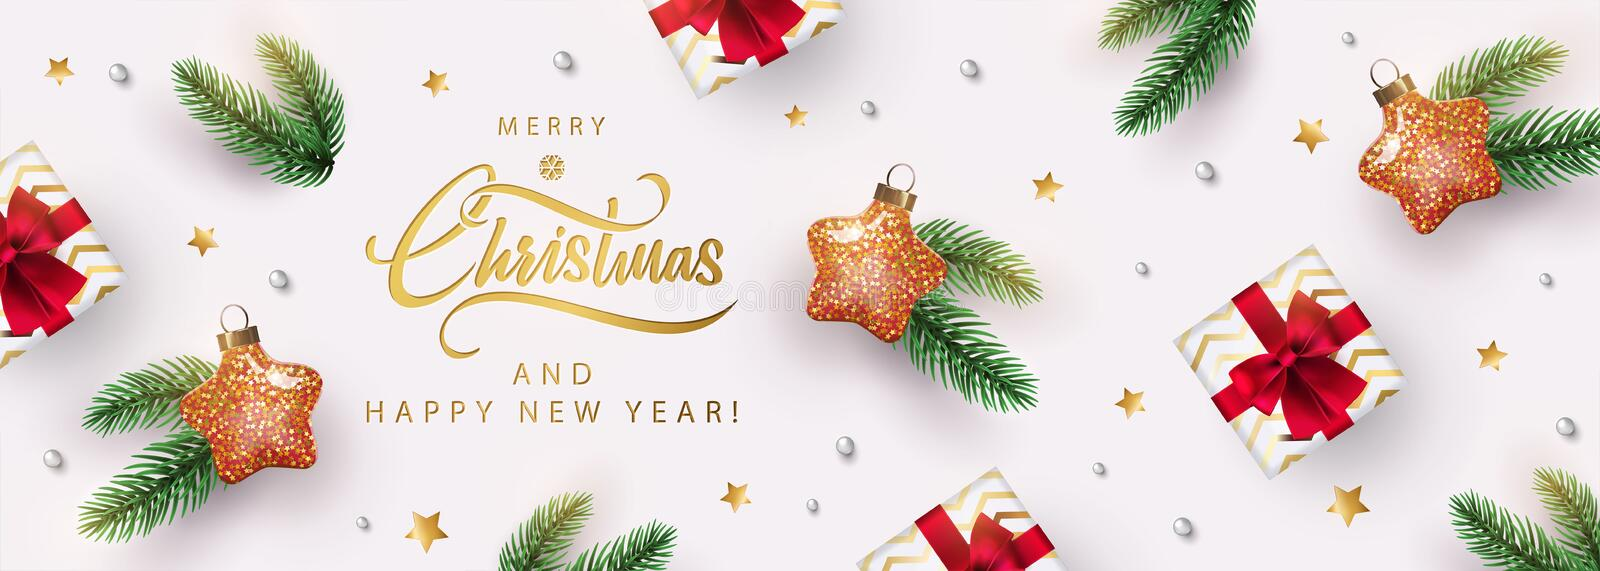 Christmas banner. Xmas background design with star shaped christmas toy, realistic gifts box, fir branch, glitter gold confetti. Horizontal New Year poster vector illustration